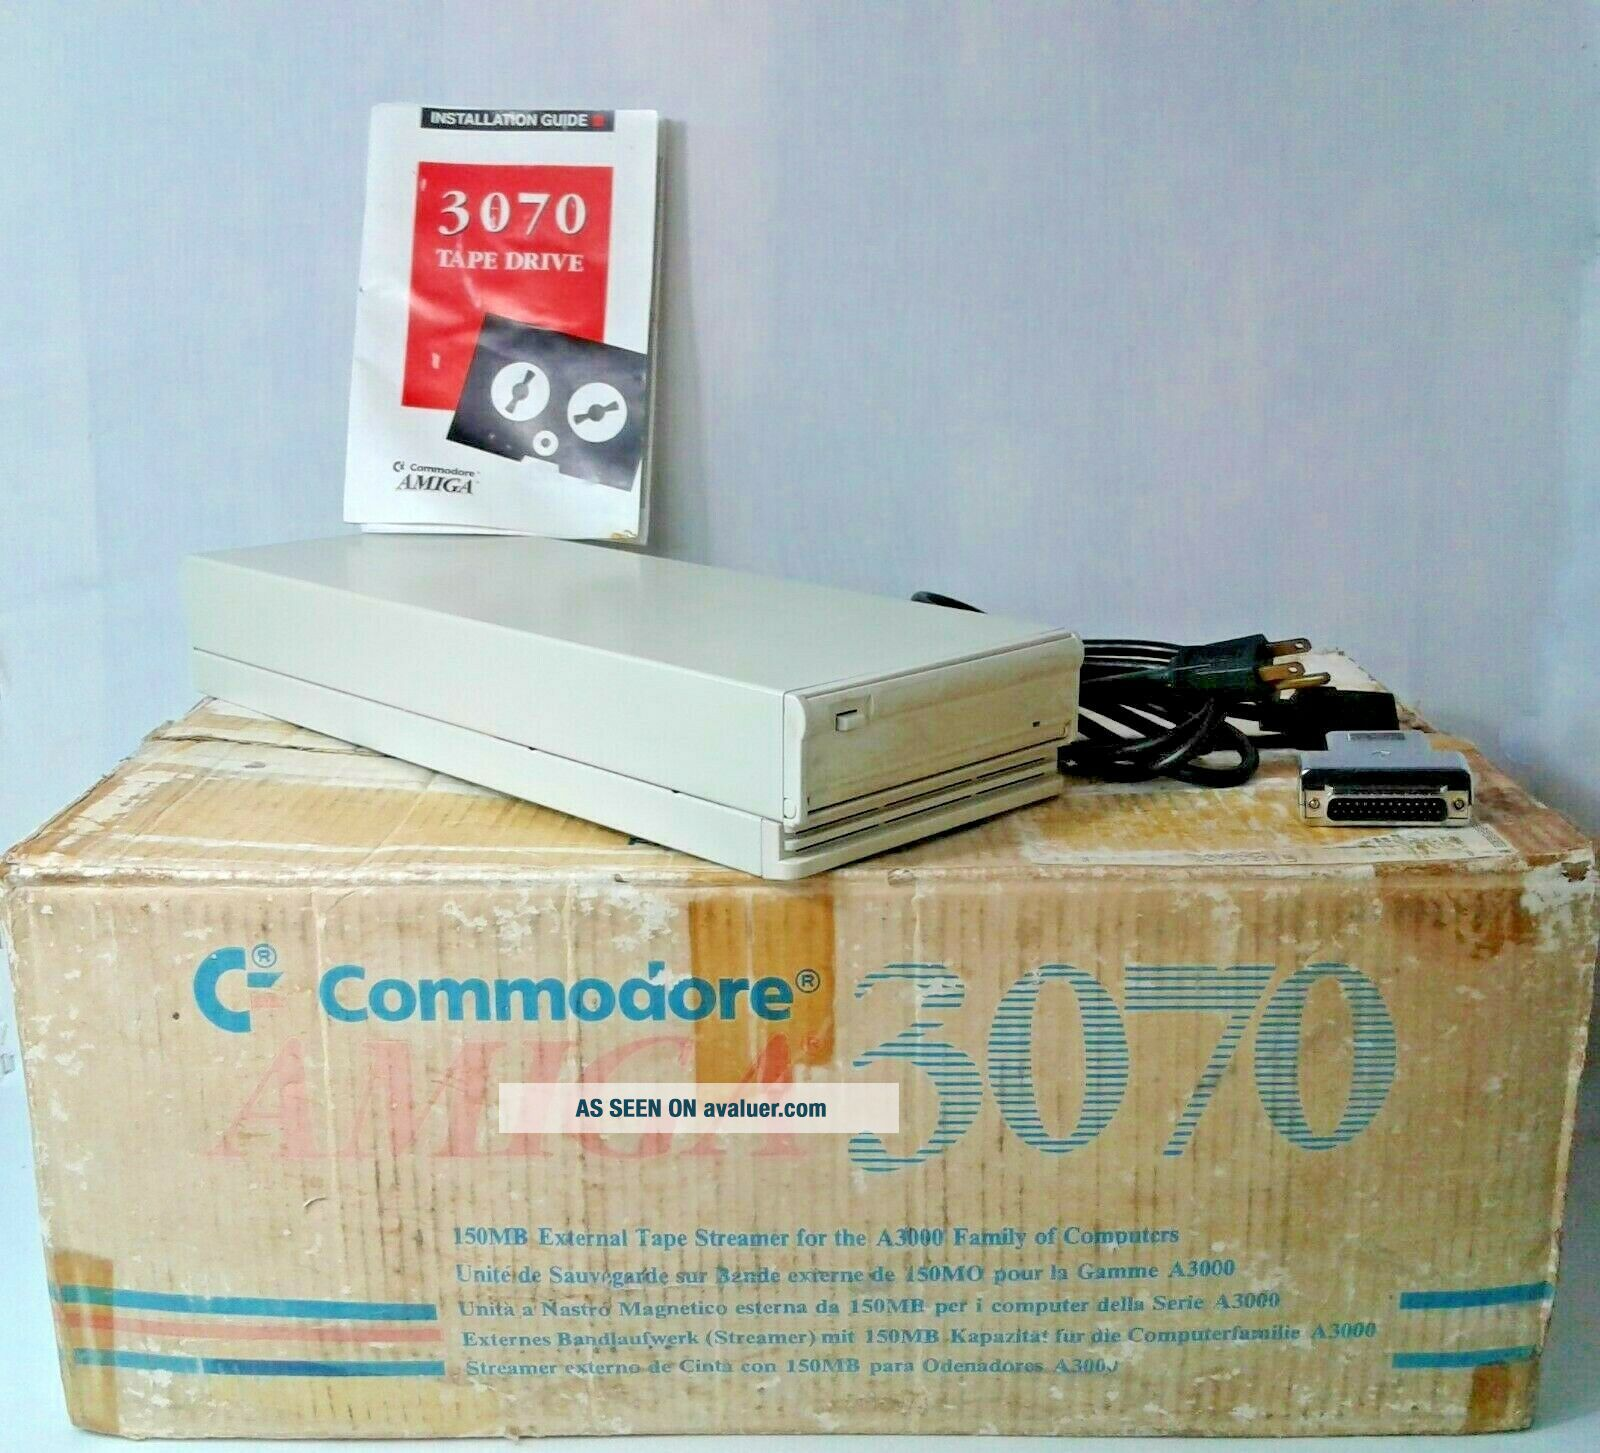 Commodore Amiga 3070 150MB External Tape Streamer For A3000 Family